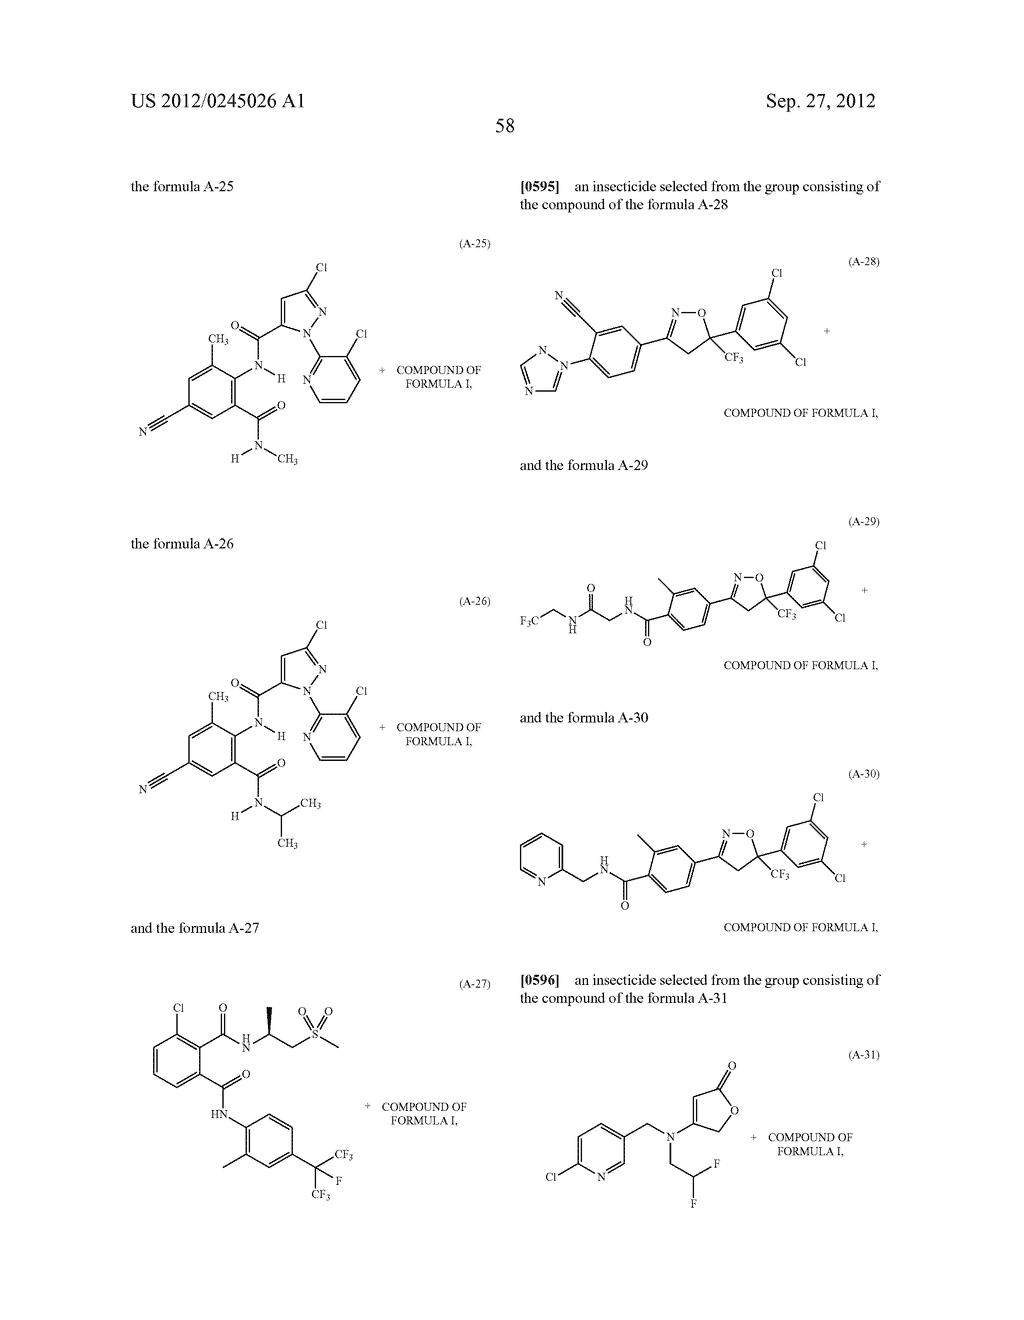 SPIRO FUSED 1-AMINO - PIPERDINE PYRROLIDINE DIONE DERIVATIVES WITH     PESTICIDAL ACTIVITY - diagram, schematic, and image 59